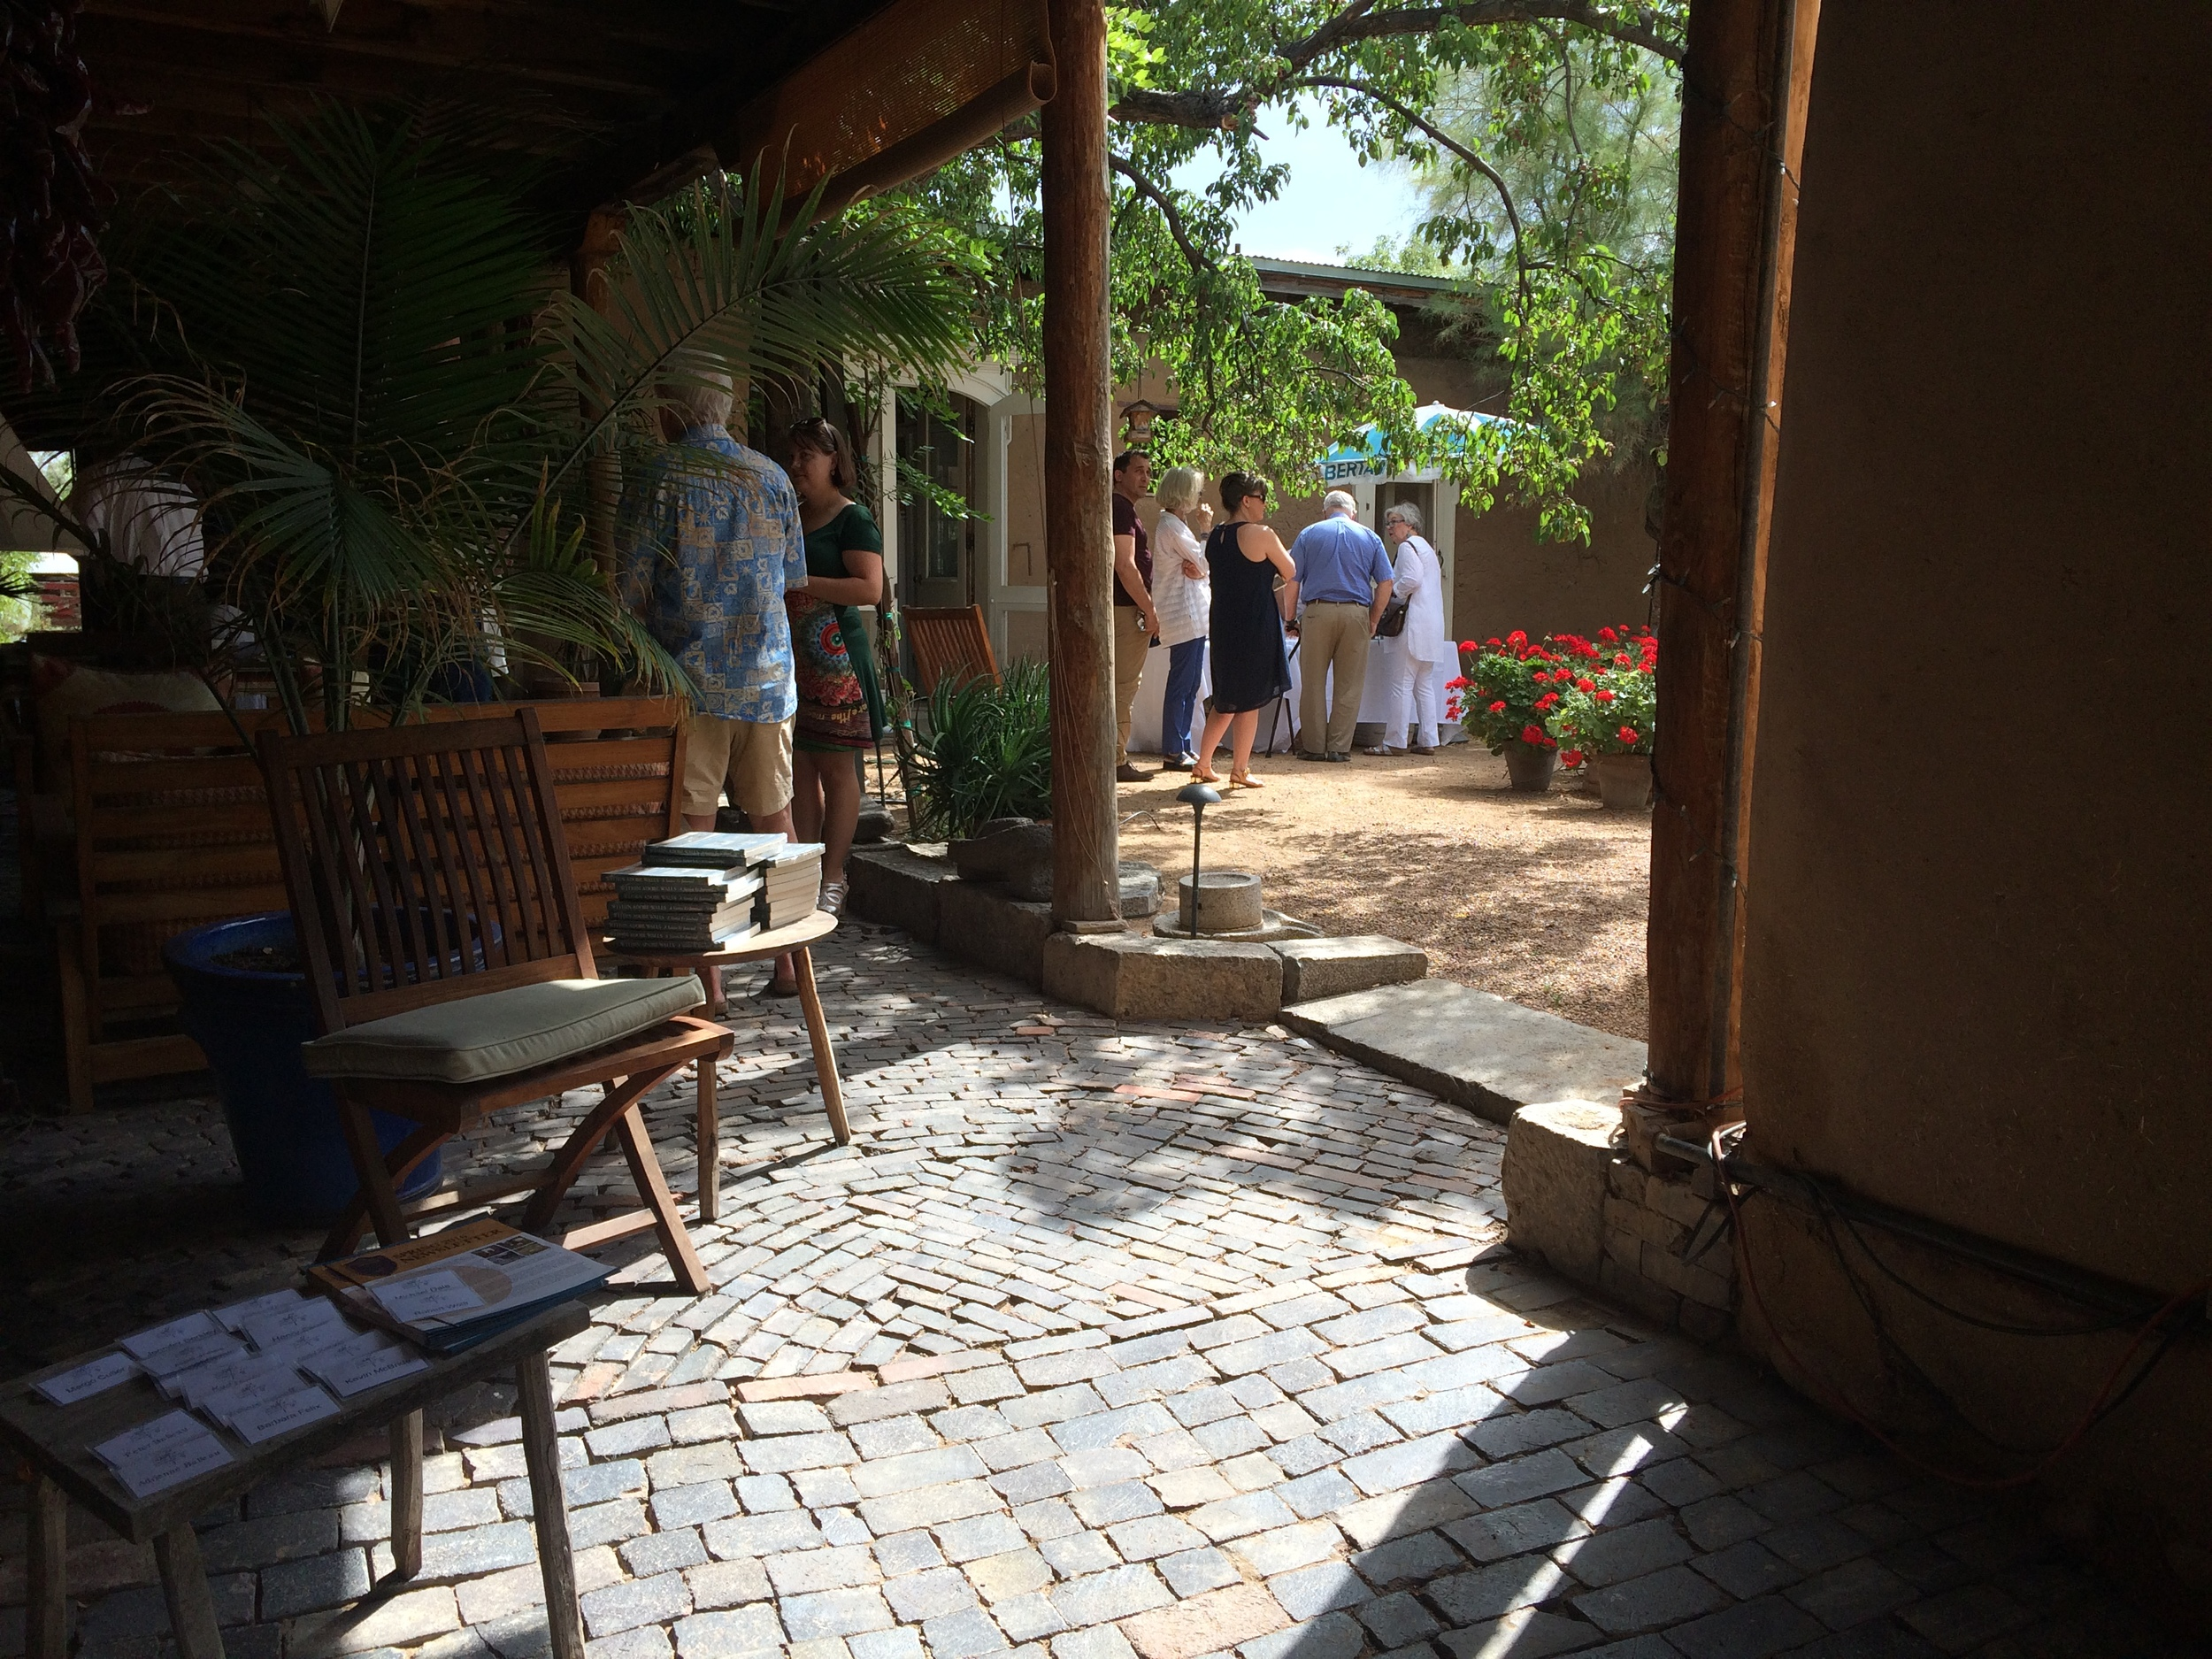 Stewards enjoying the courtyard at the Vigil House, July 2016